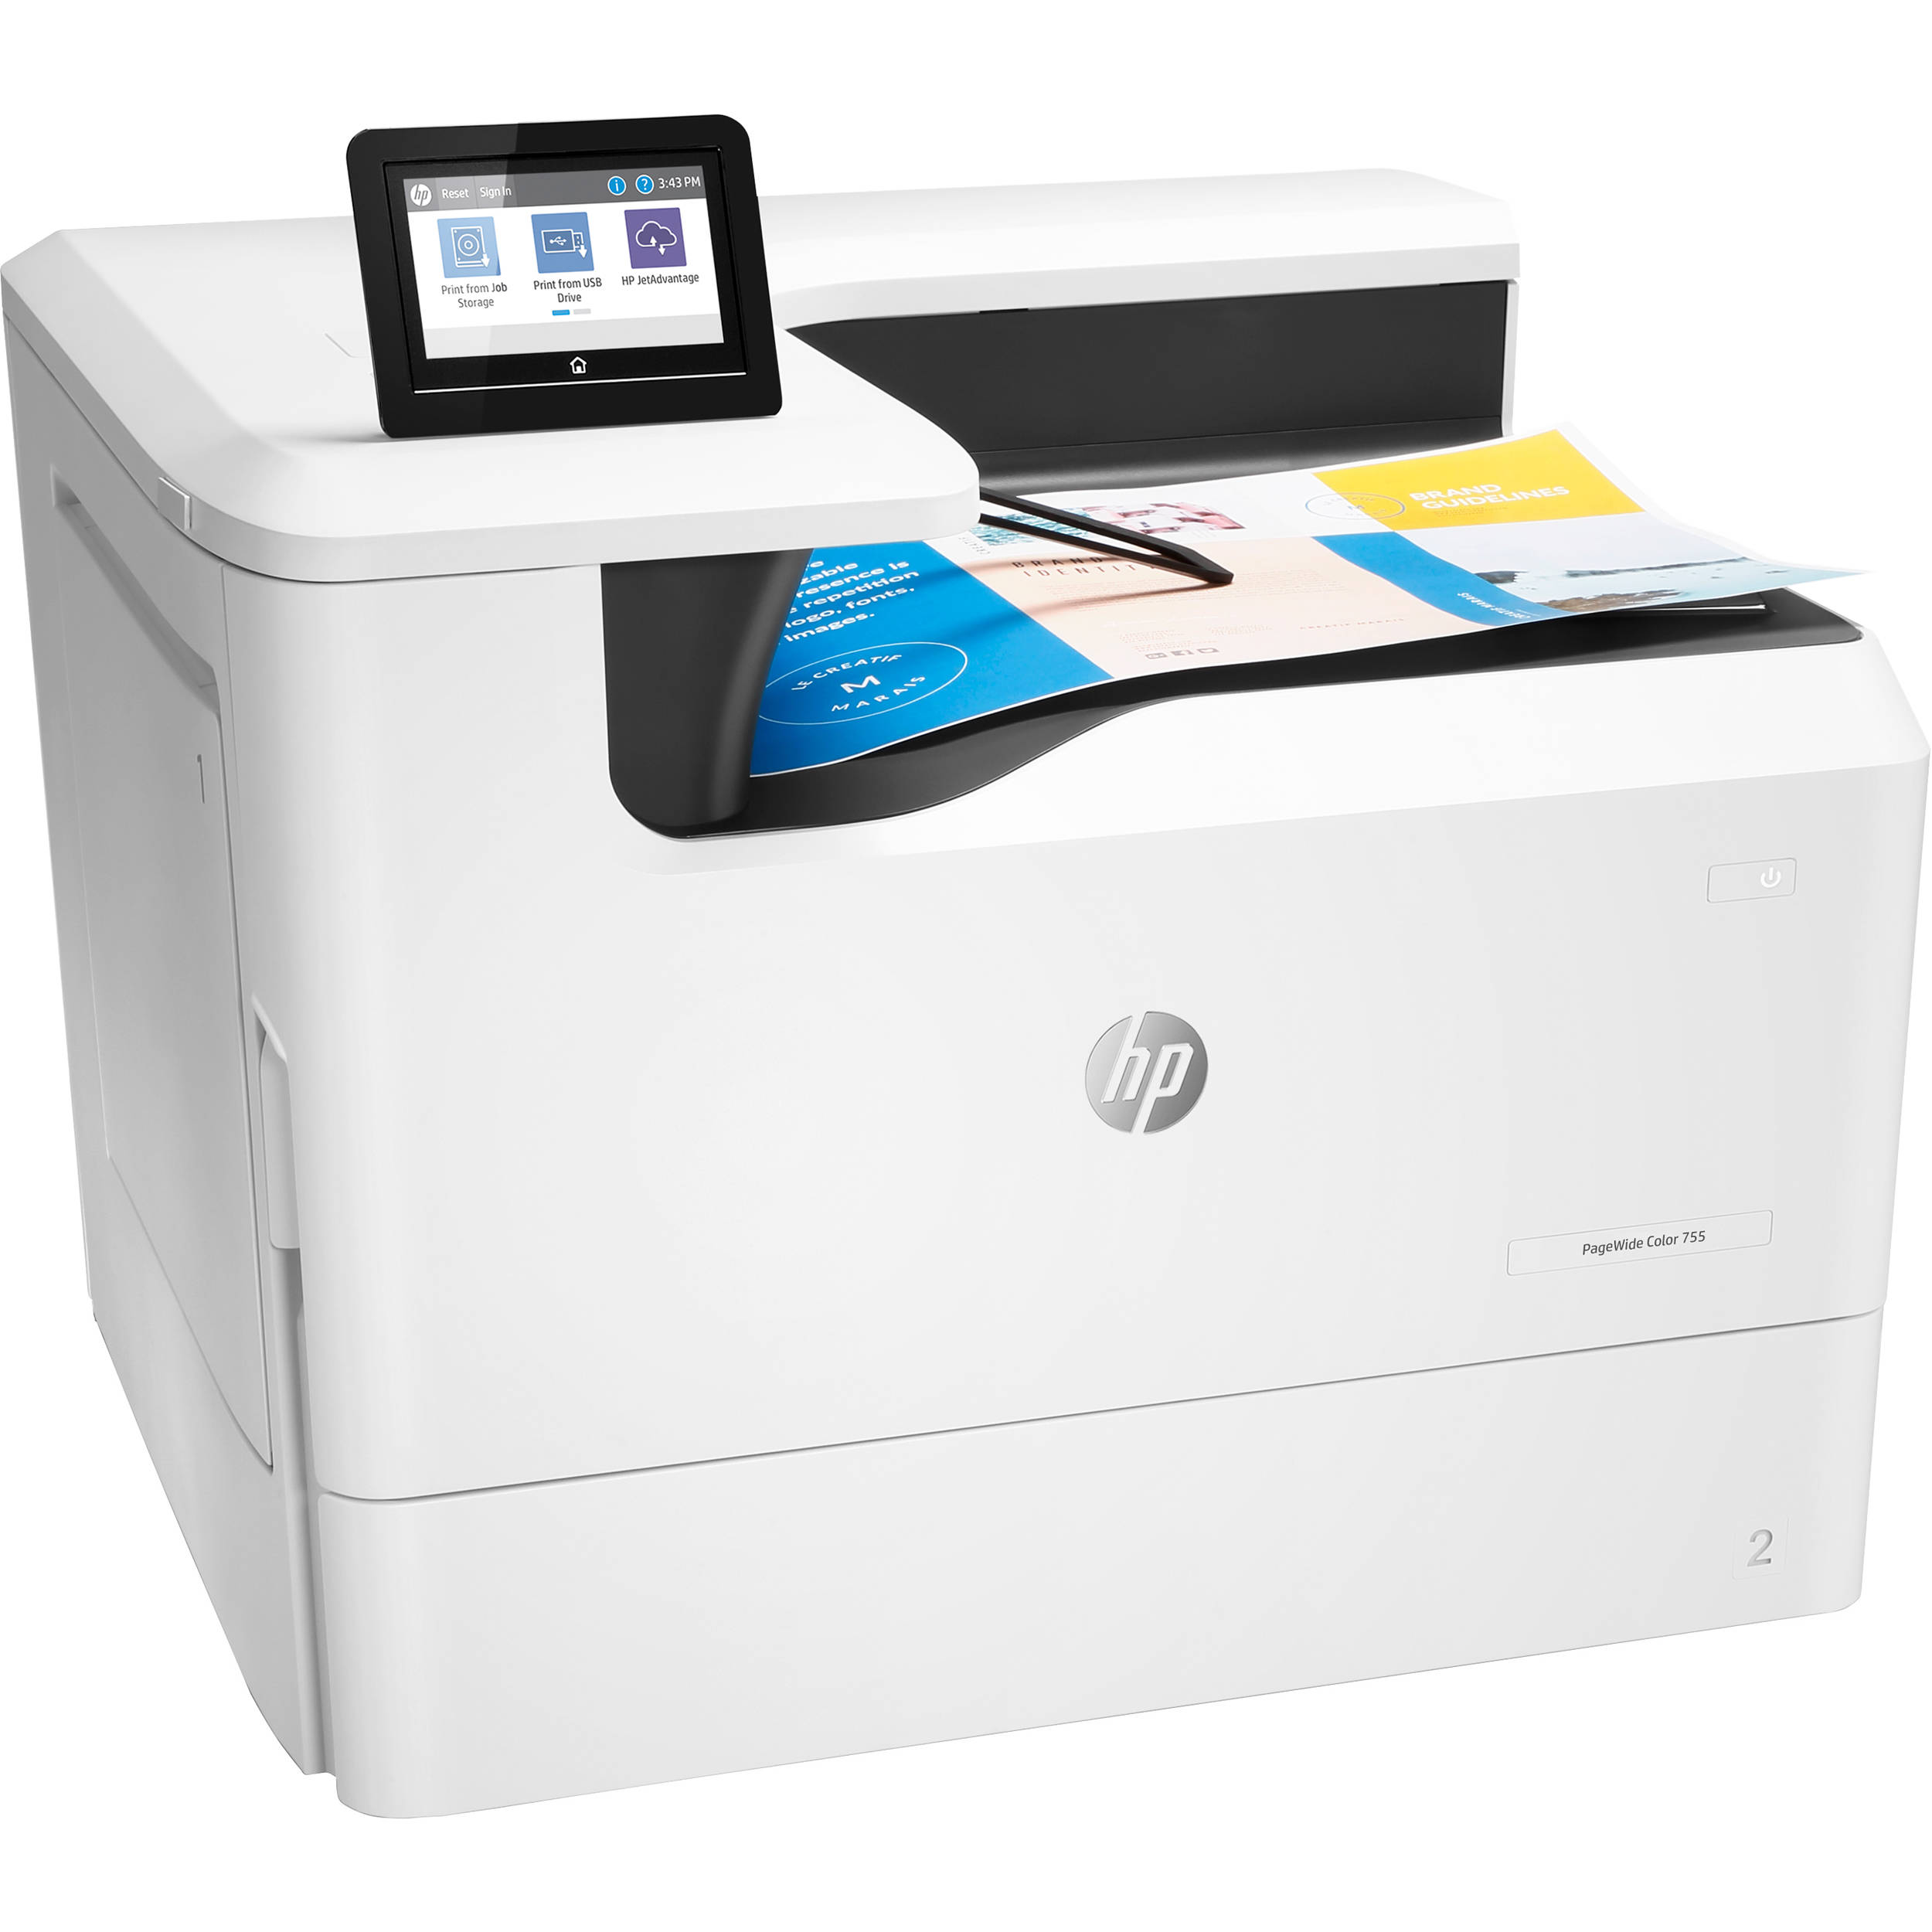 HP PageWide Color 755dn Color Laser Printer, New (4PZ47A)